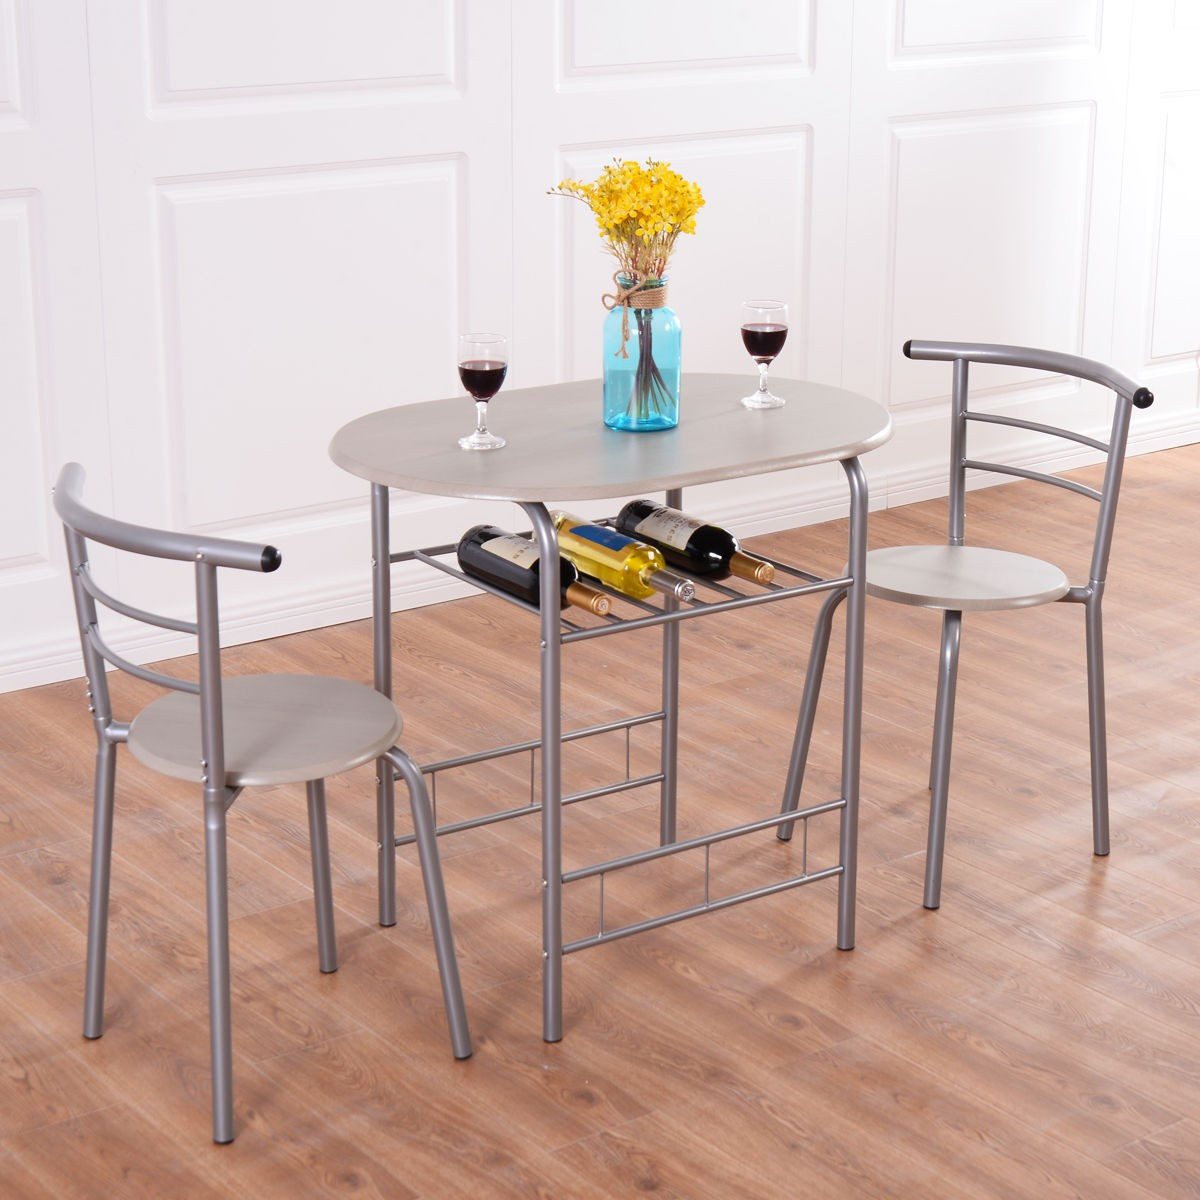 Dining Kitchen Table Sets: 3pcs Bistro Dining Set Small Kitchen Indoor Outdoor Table